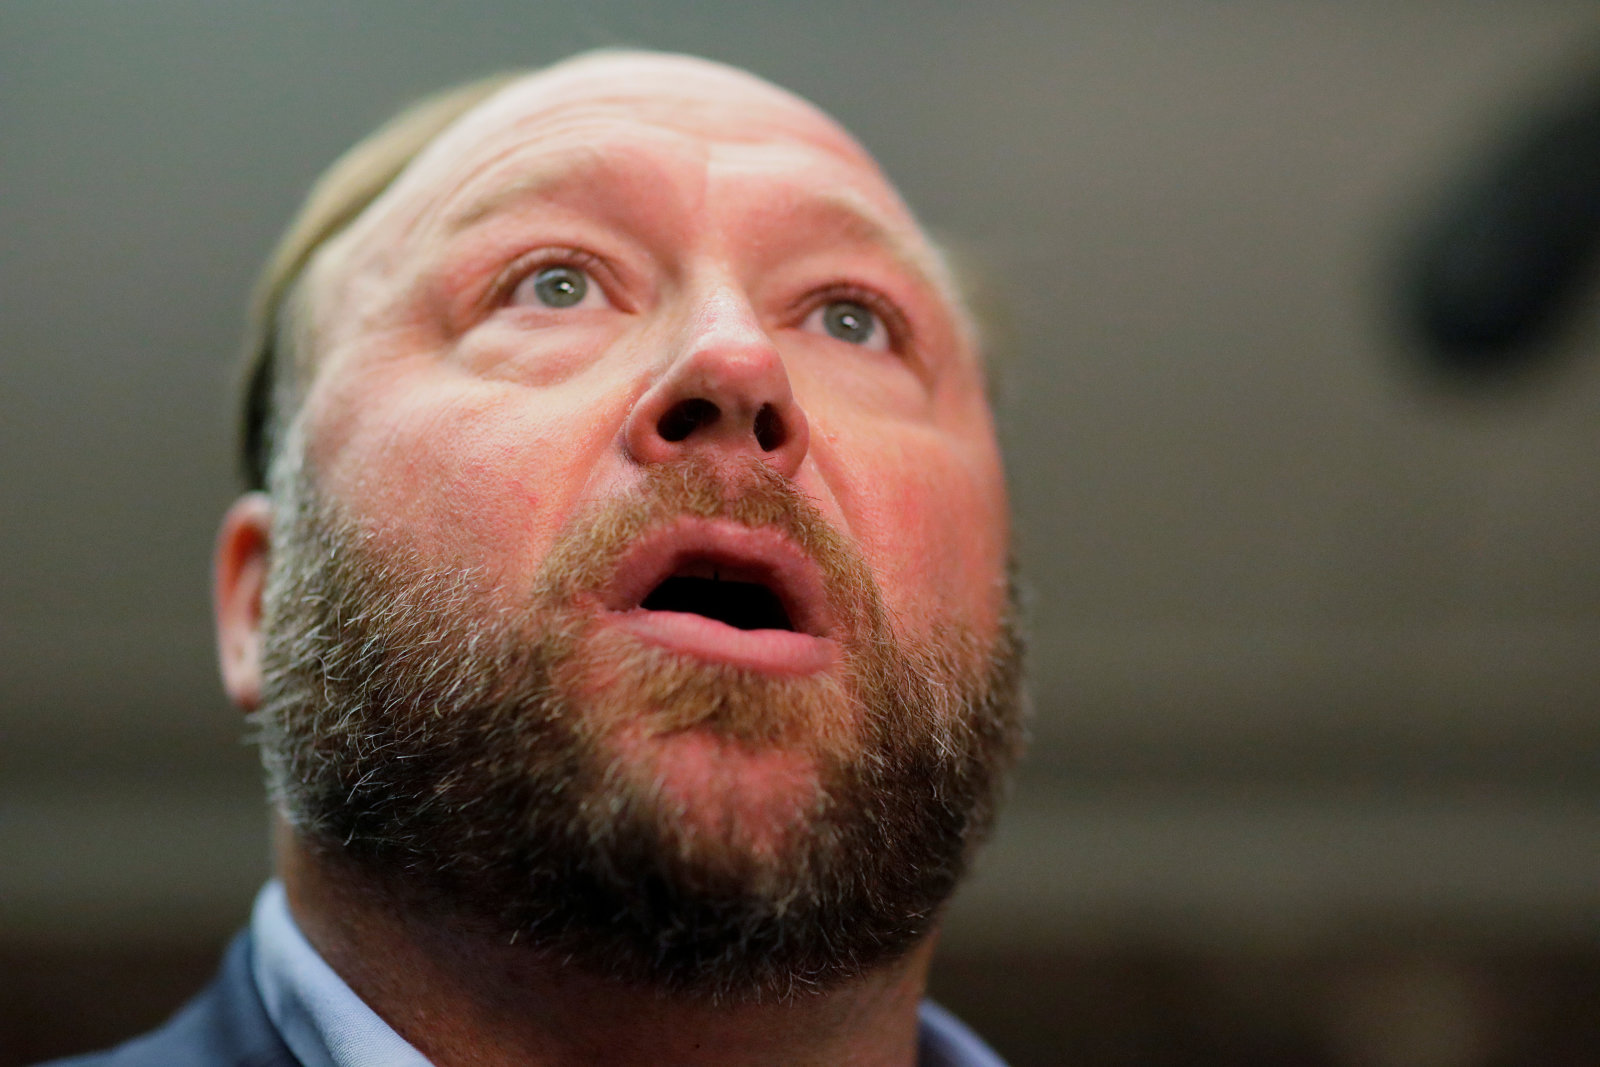 Radio host Alex Jones of Infowars talks to the news media as he arrives to listen to the testimony of Twitter CEO Jack Dorsey and Facebook COO Sheryl Sandberg at a Senate Intelligence Committee hearing on foreign influence operations on social media platforms on Capitol Hill in Washington, U.S., September 5, 2018. REUTERS/Jim Bourg